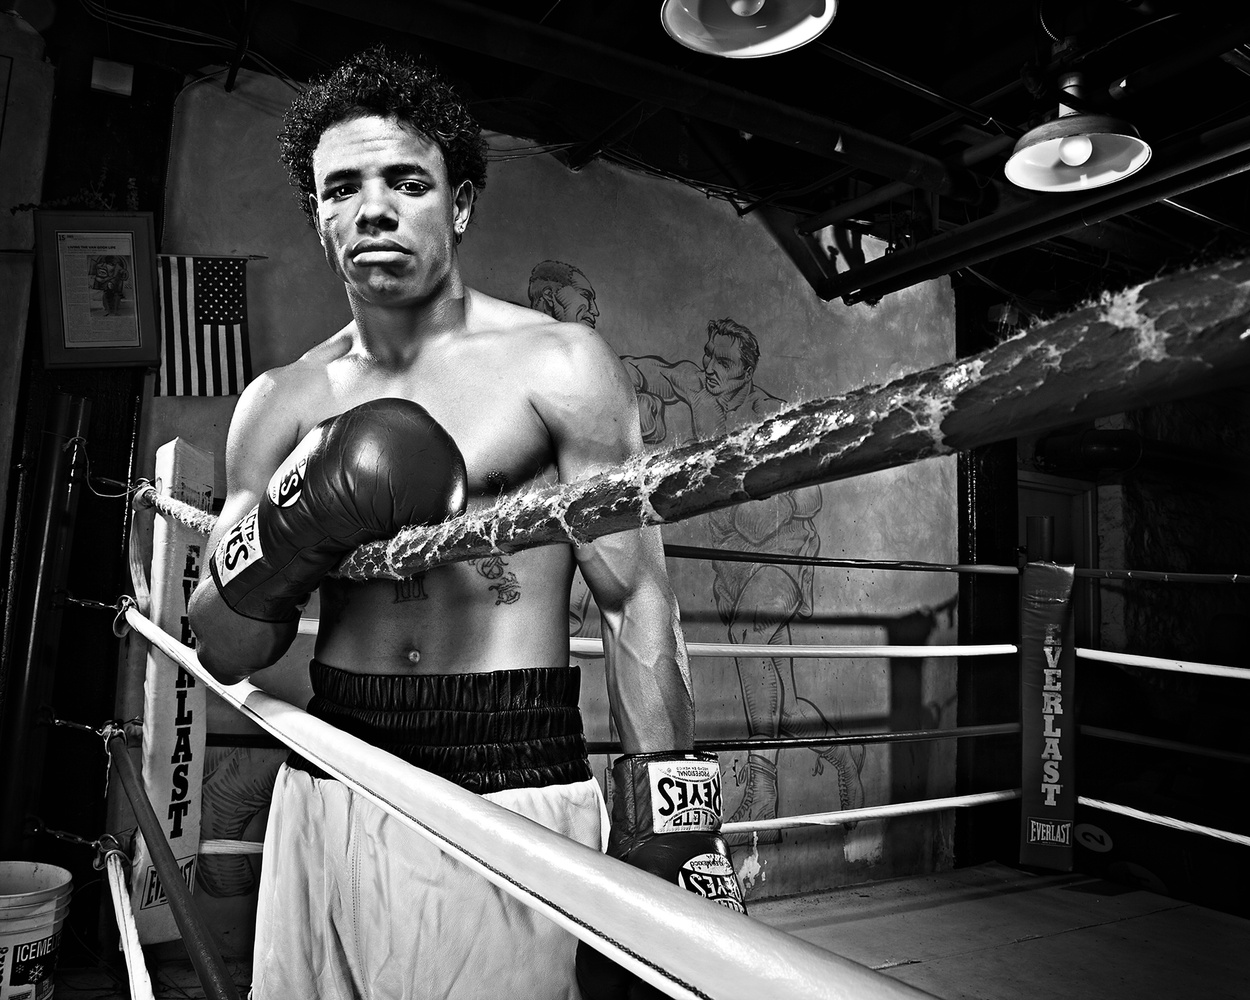 environmental portrait of pro boxer photo by brian kaldorf by Brian Kaldorf